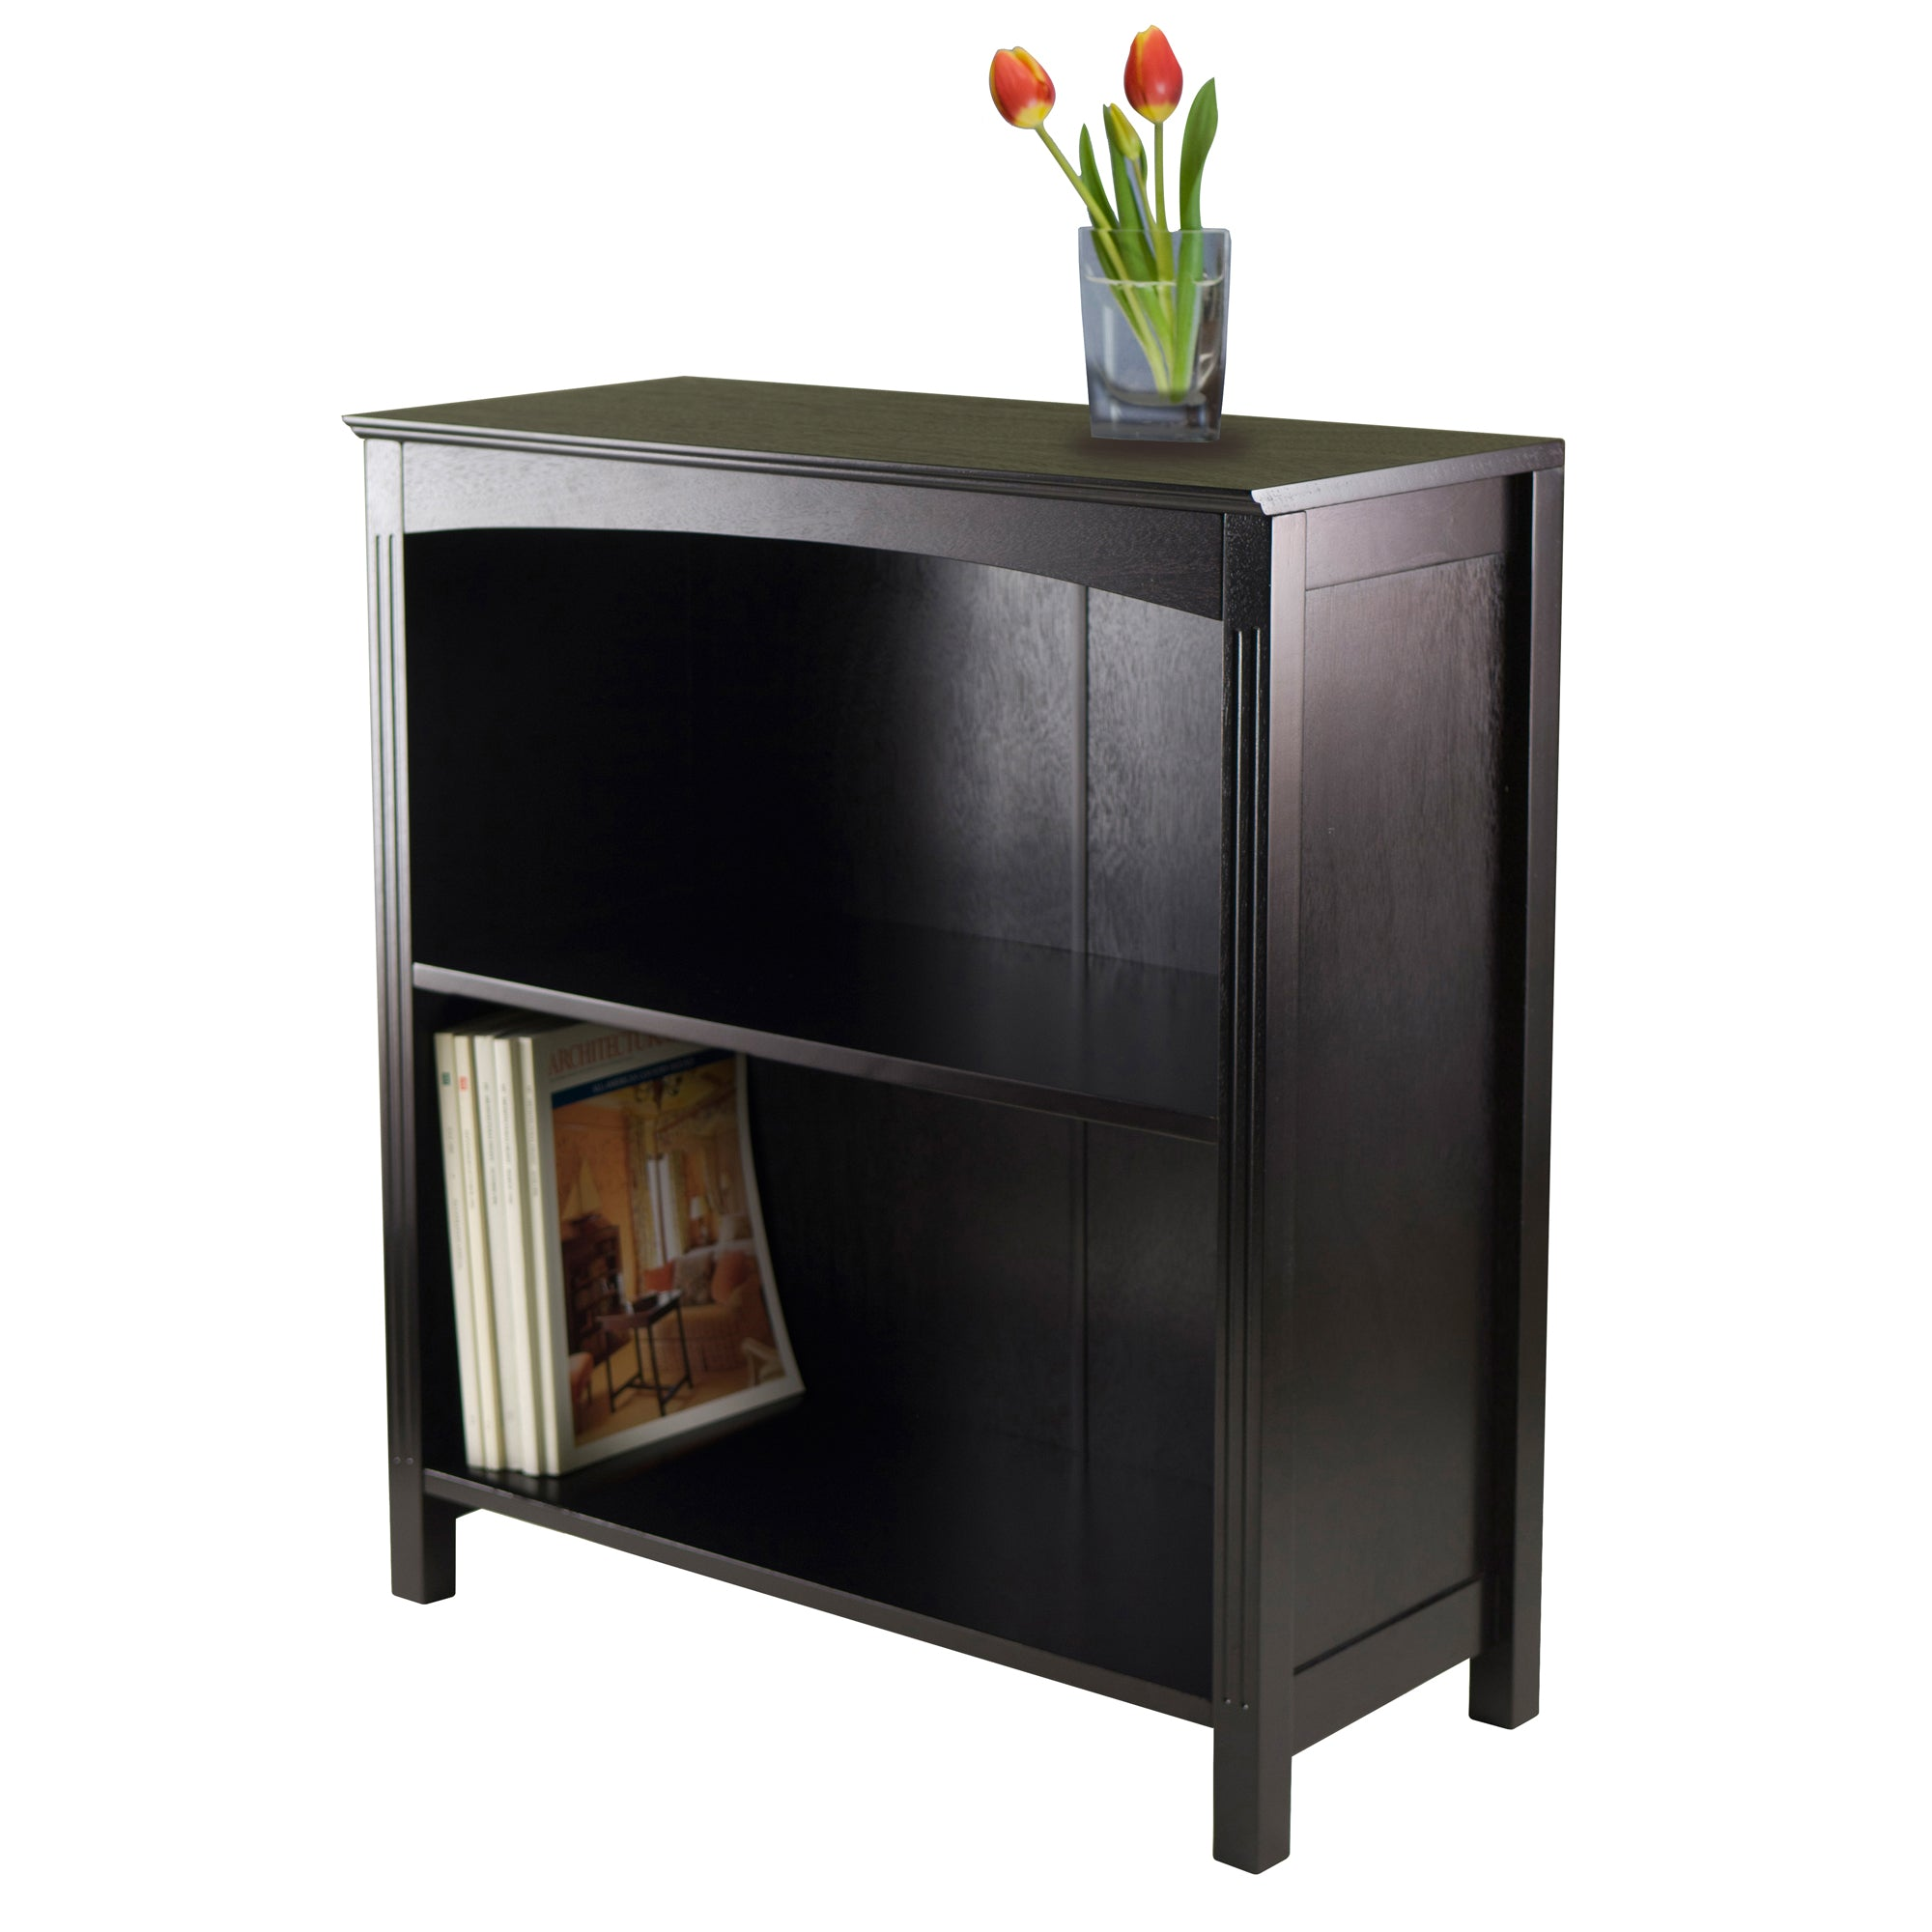 Small Bookcase Storage Shelf in Espresso Finish